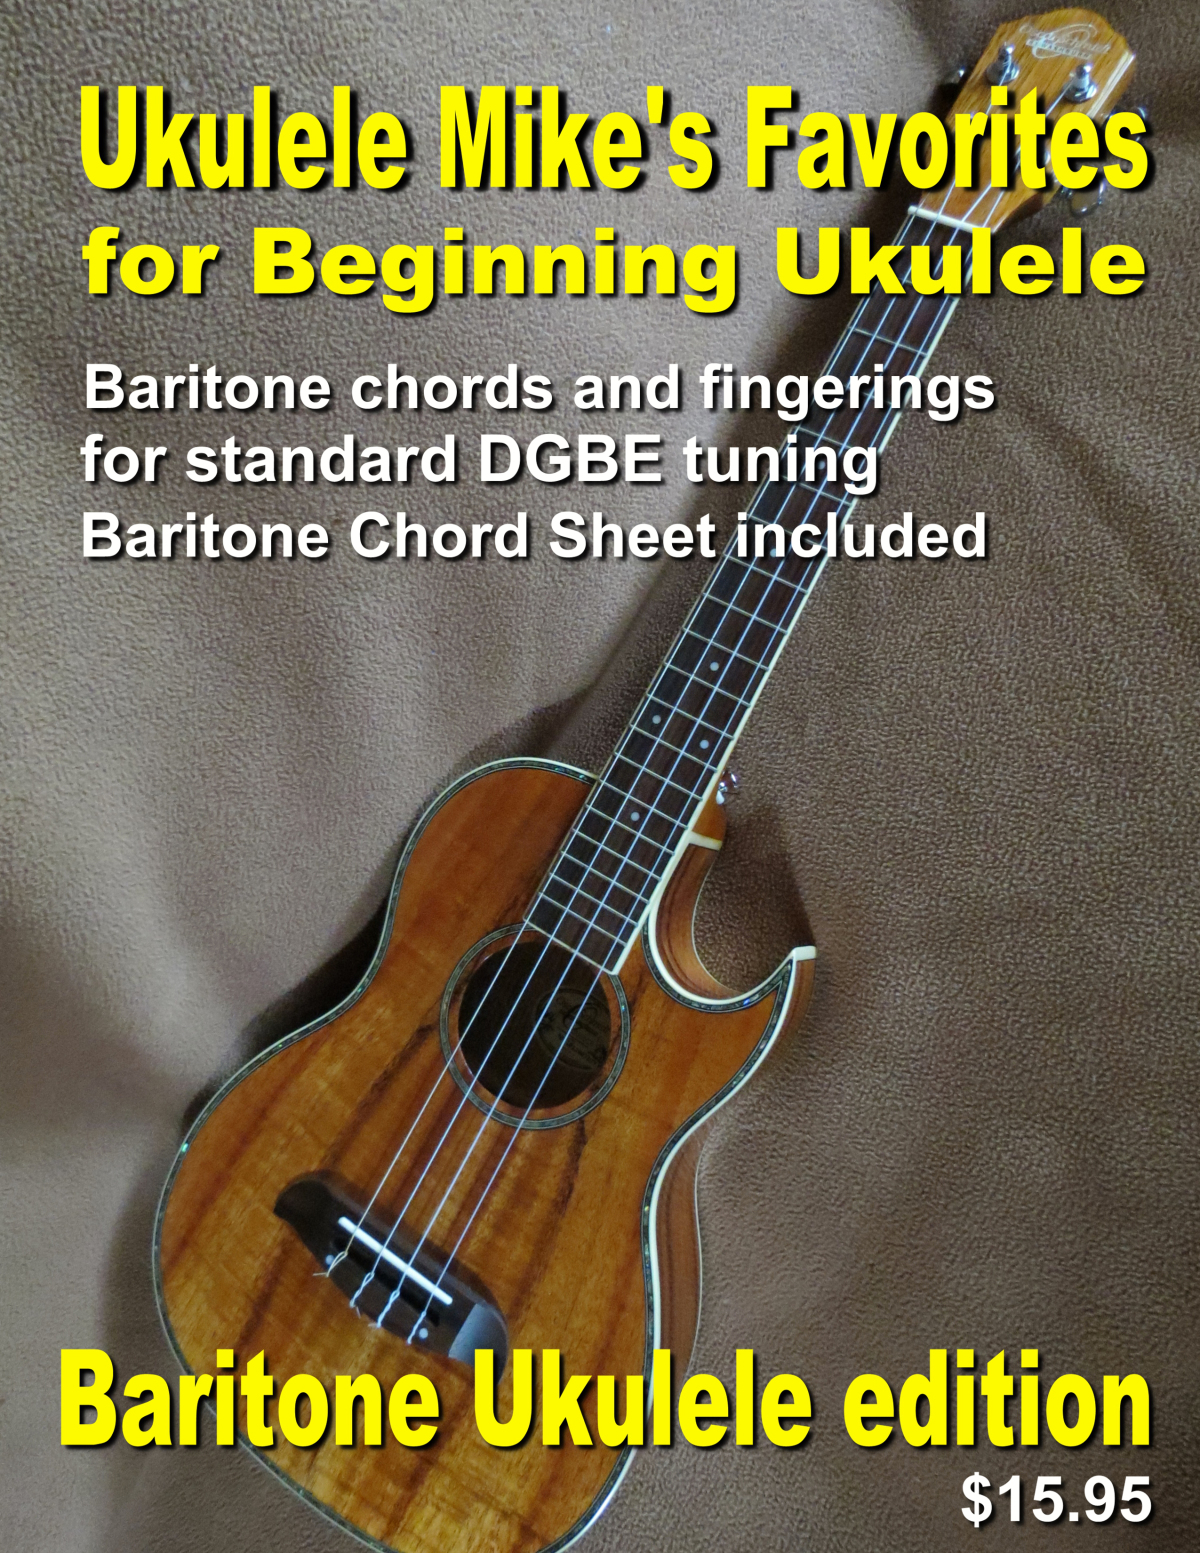 Ukulele mike lynch all things ukulele news commentaries in cover logo maker hexwebz Choice Image